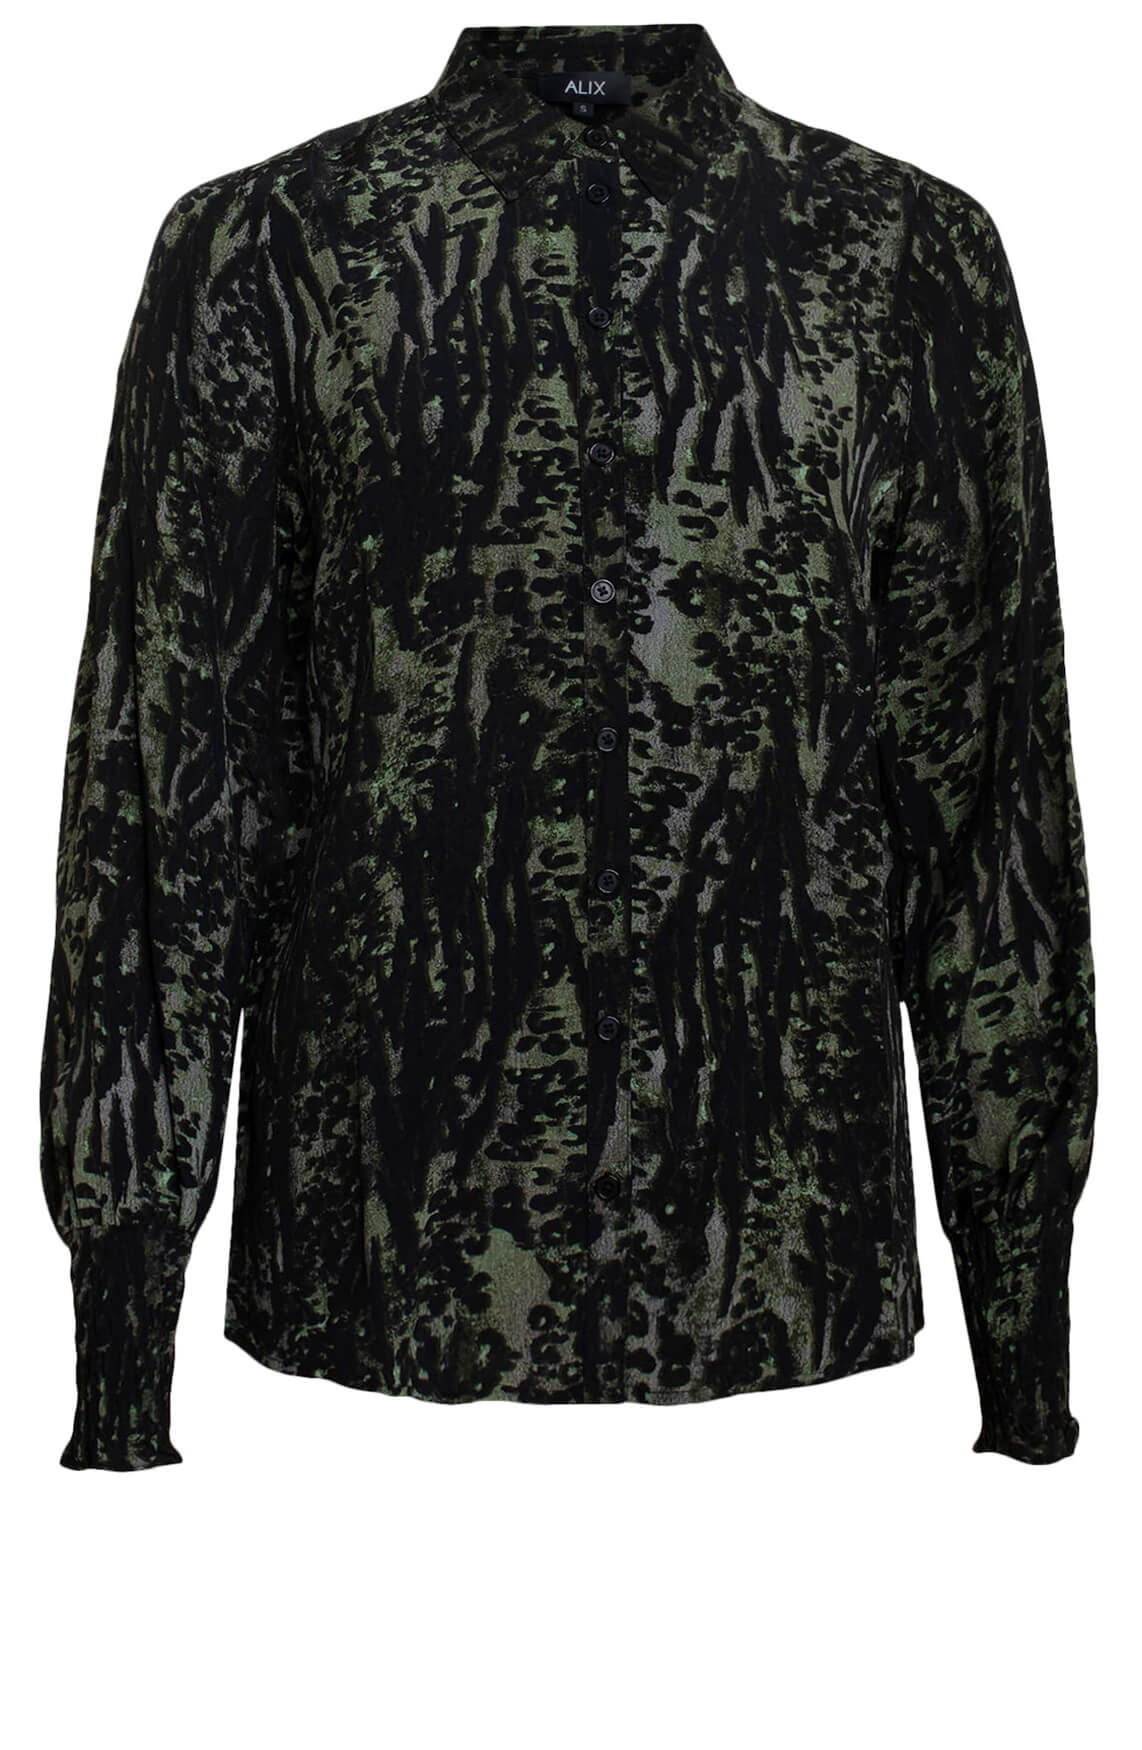 Alix The Label Dames Animal blouse groen